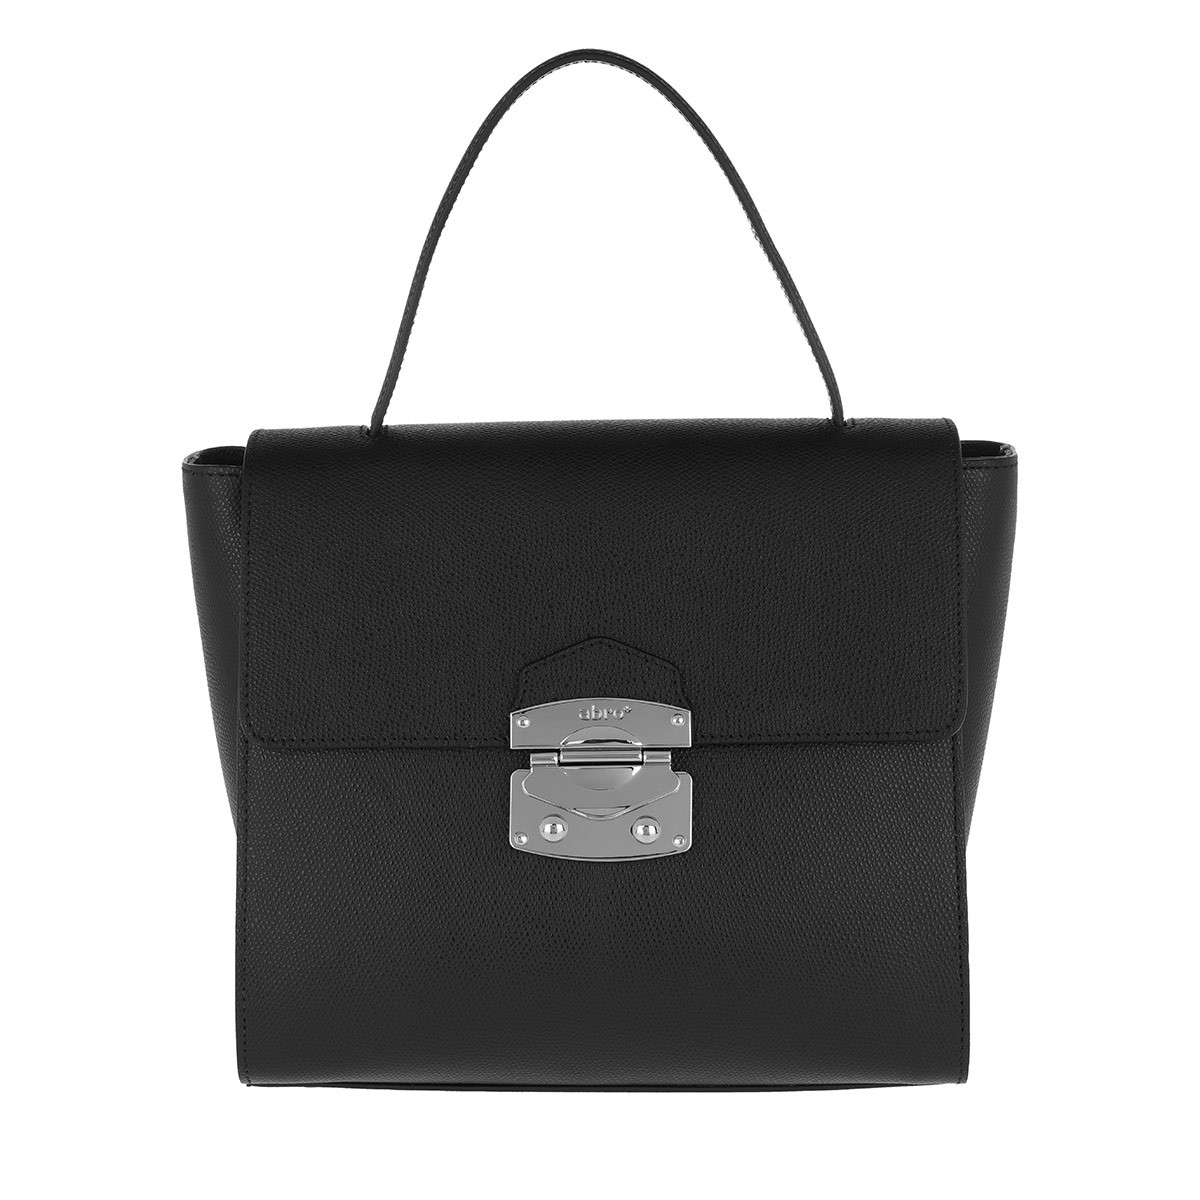 Abro Satchel Bag - Pamellato Handle Bag Black/Nickel - in schwarz - für Damen